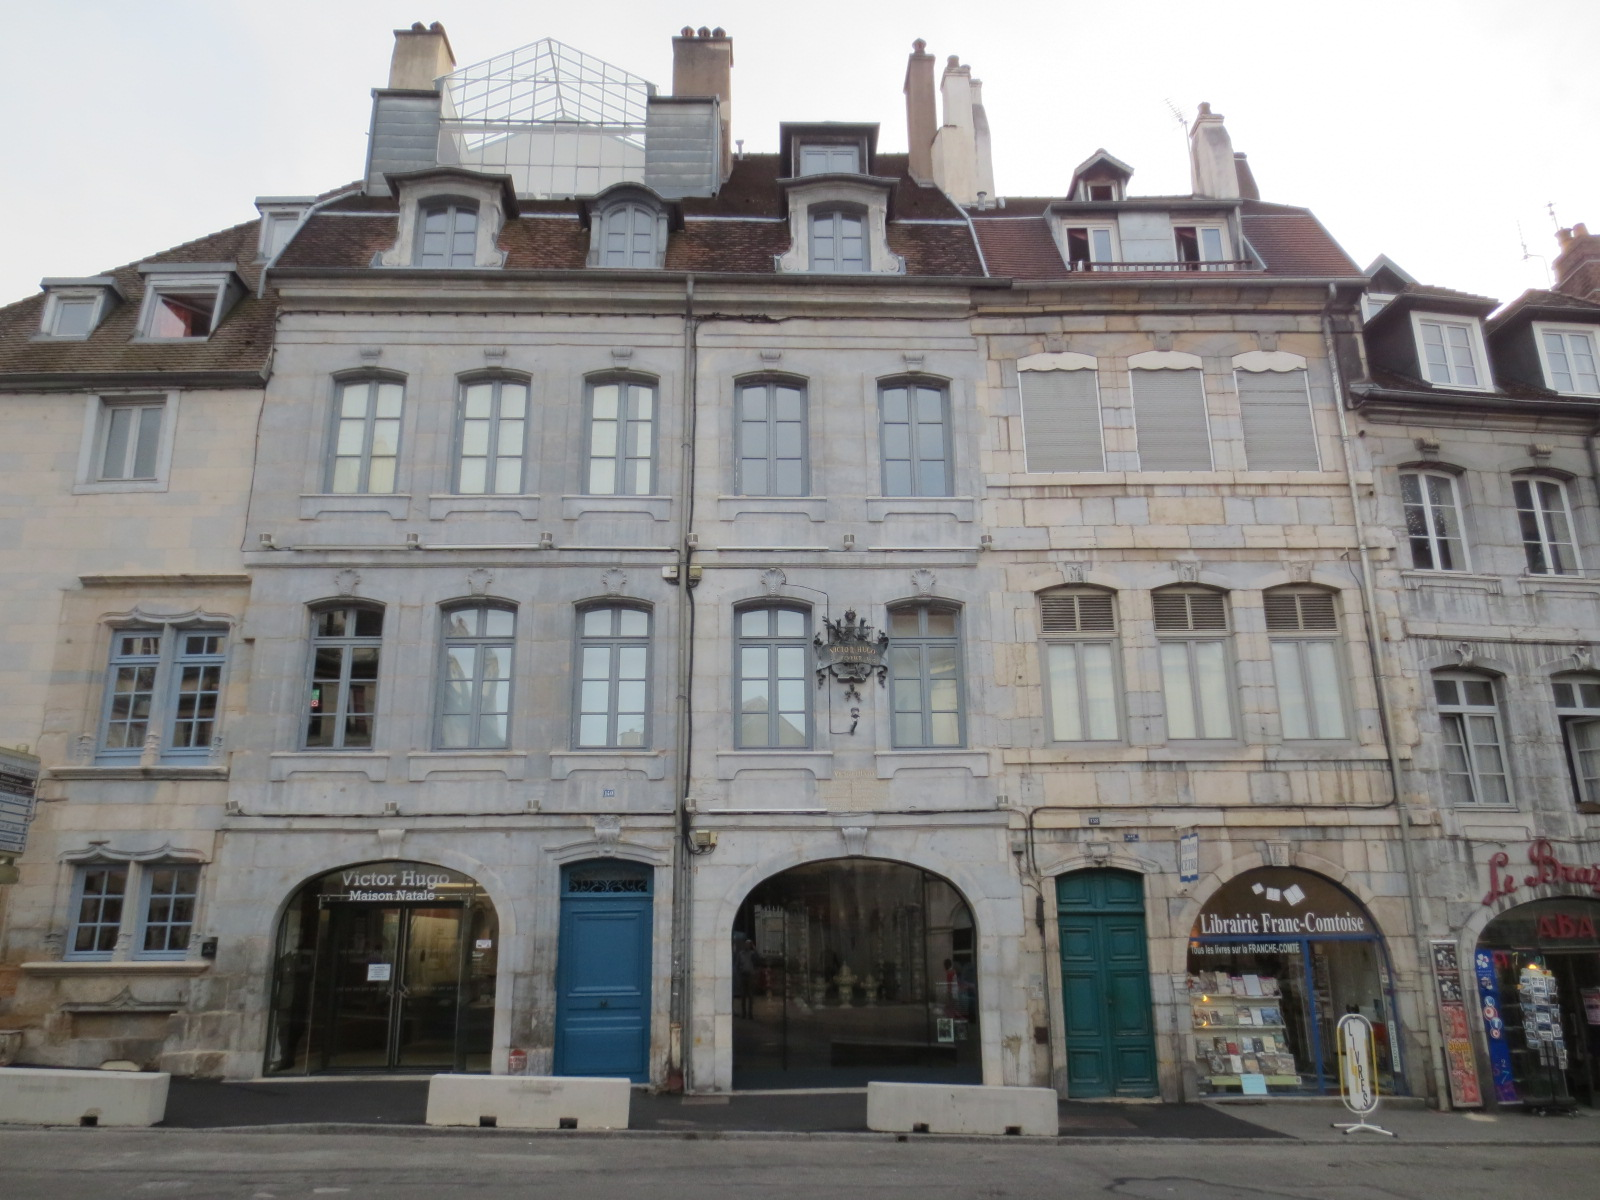 Victor Hugo's birthplace in France